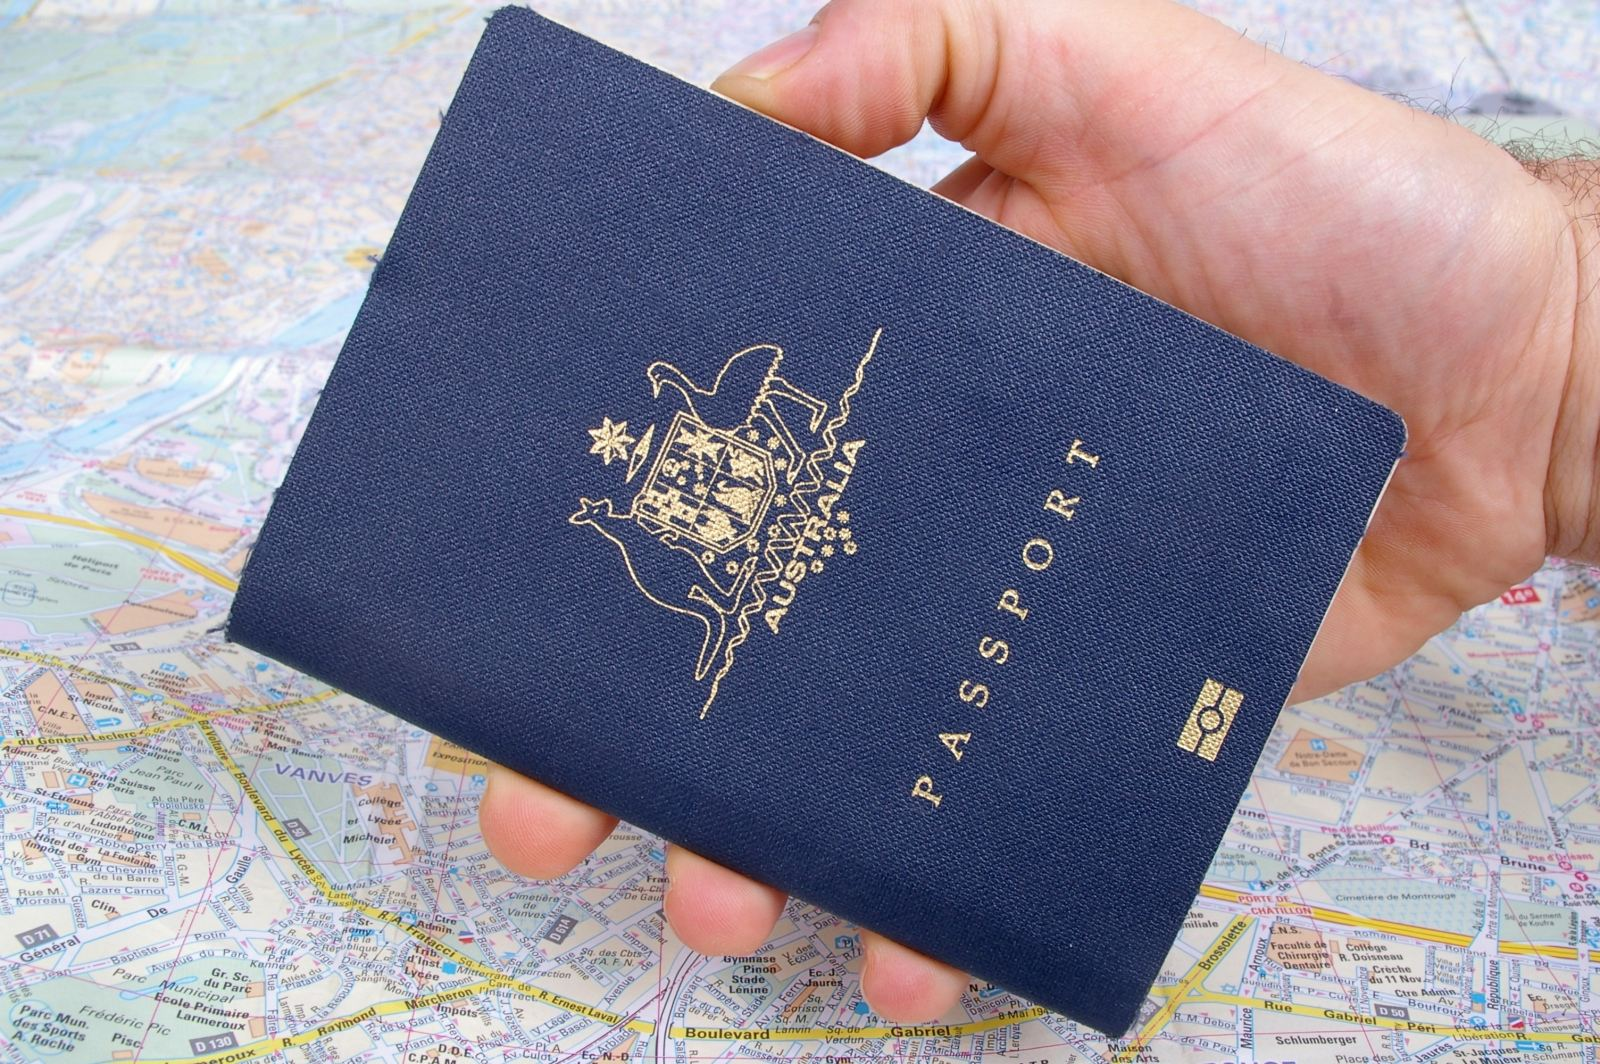 In cases where foreigners are unilaterally exempted from visas in Vietnam